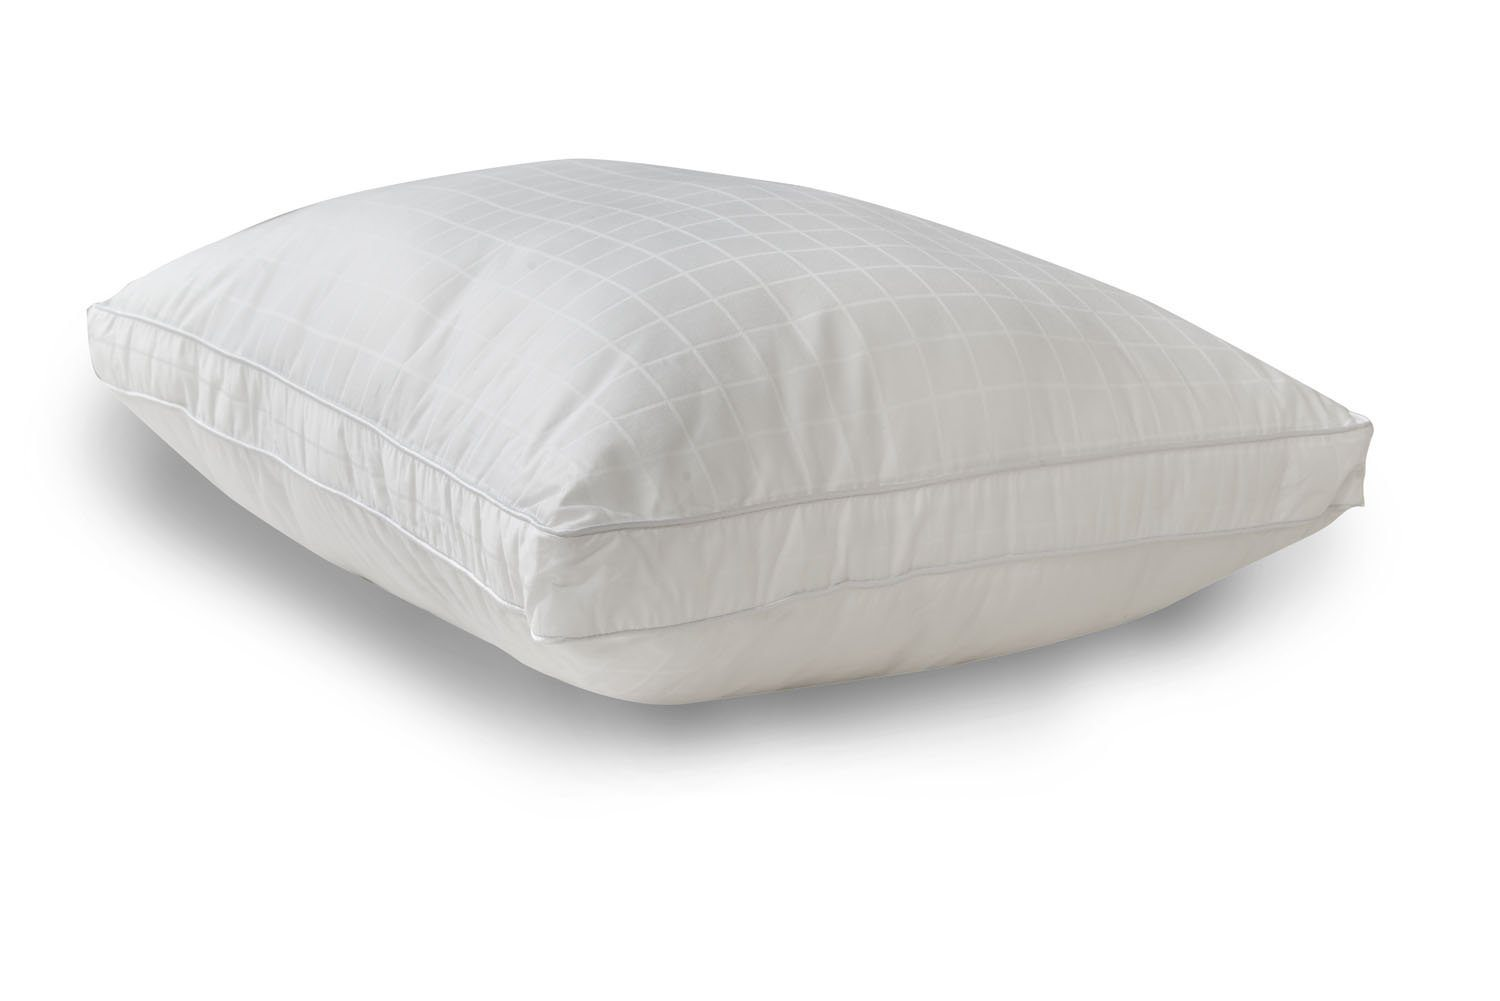 Down Alternative Pillow Review: Pros and Cons 1